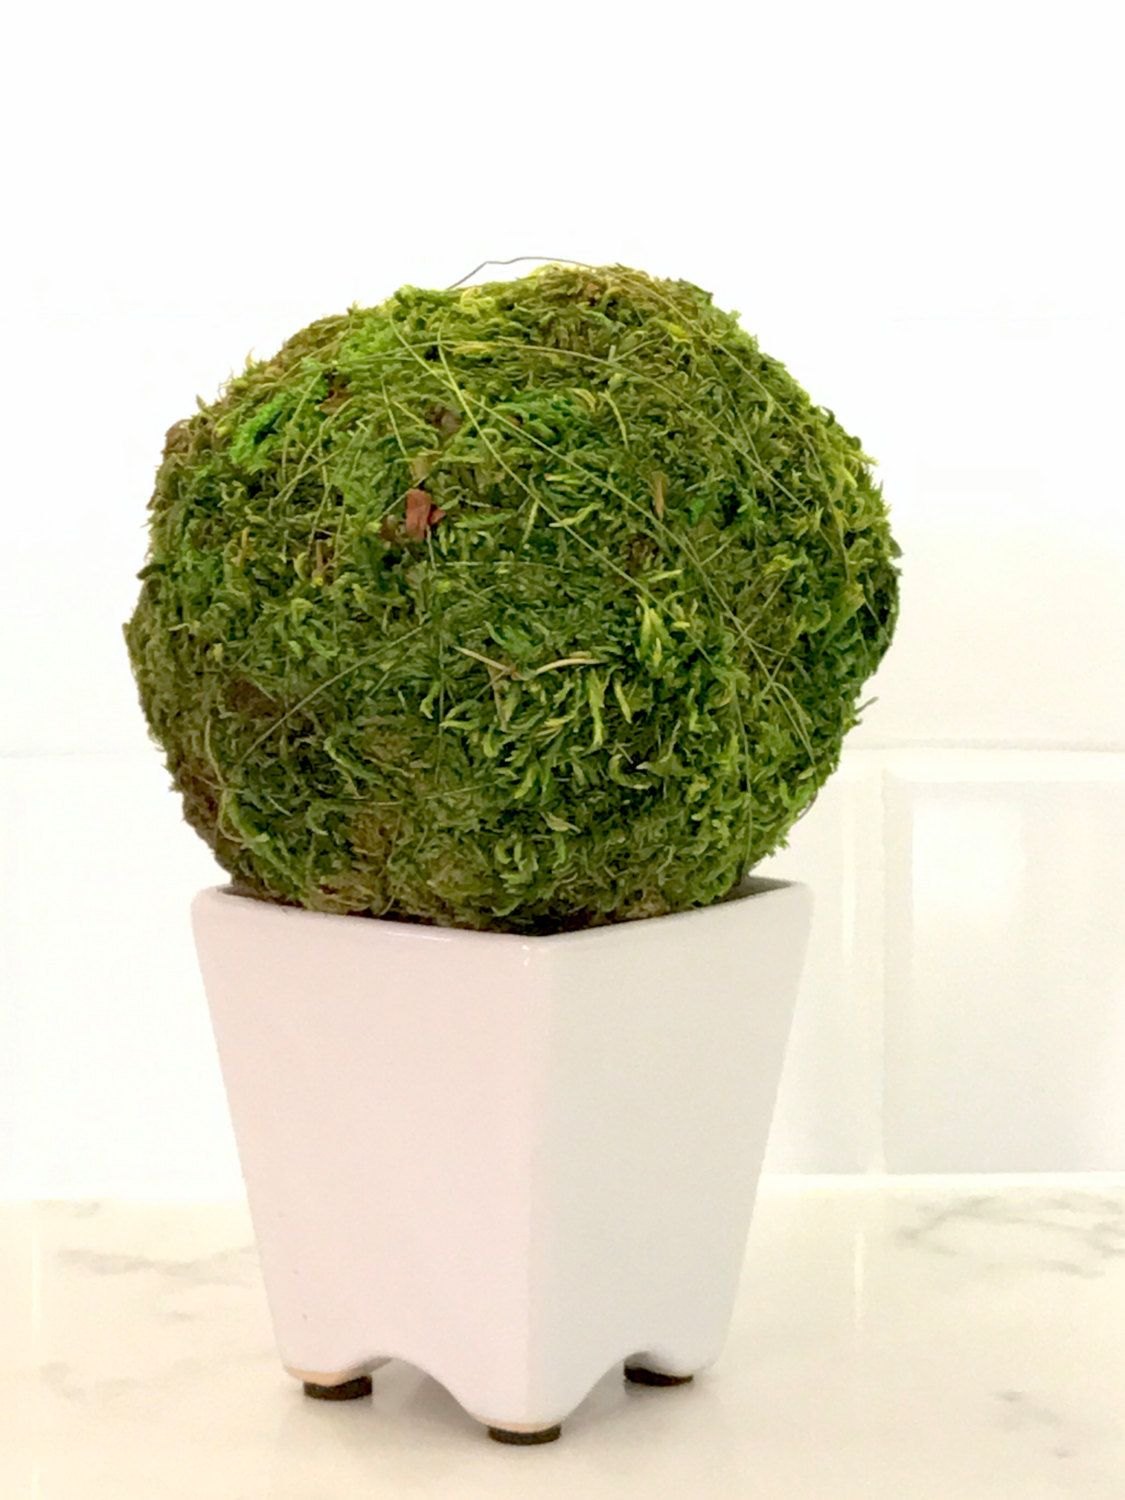 Decorative Moss Balls Unique Green Moss Ball Decor Moss Pomander Green Balls White Ceramic Vase Design Ideas